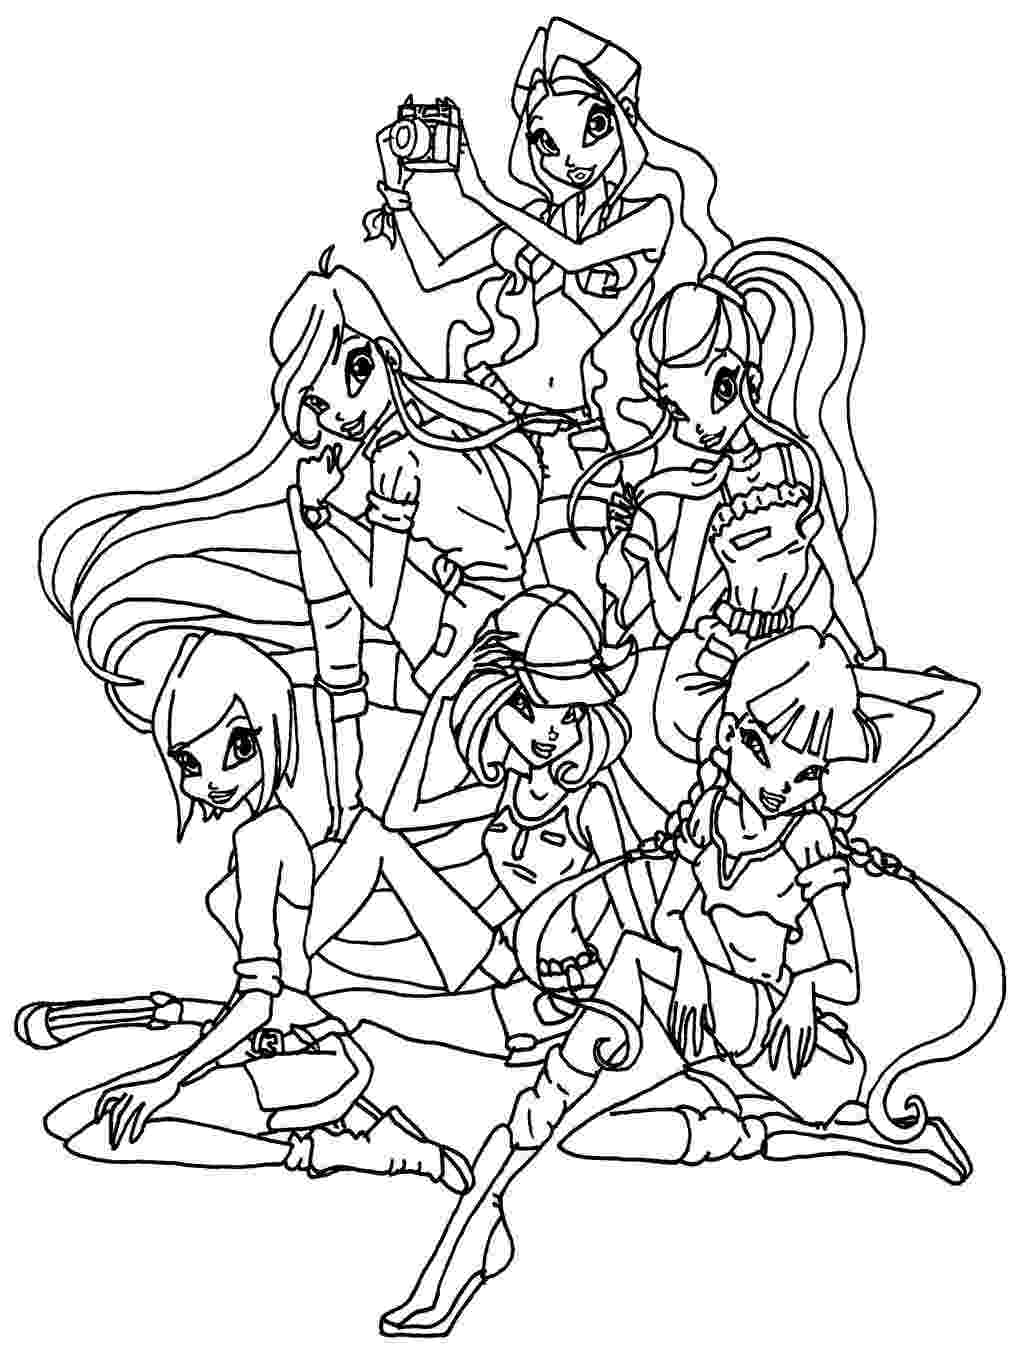 picture winx club free printable winx club coloring pages for kids club winx picture